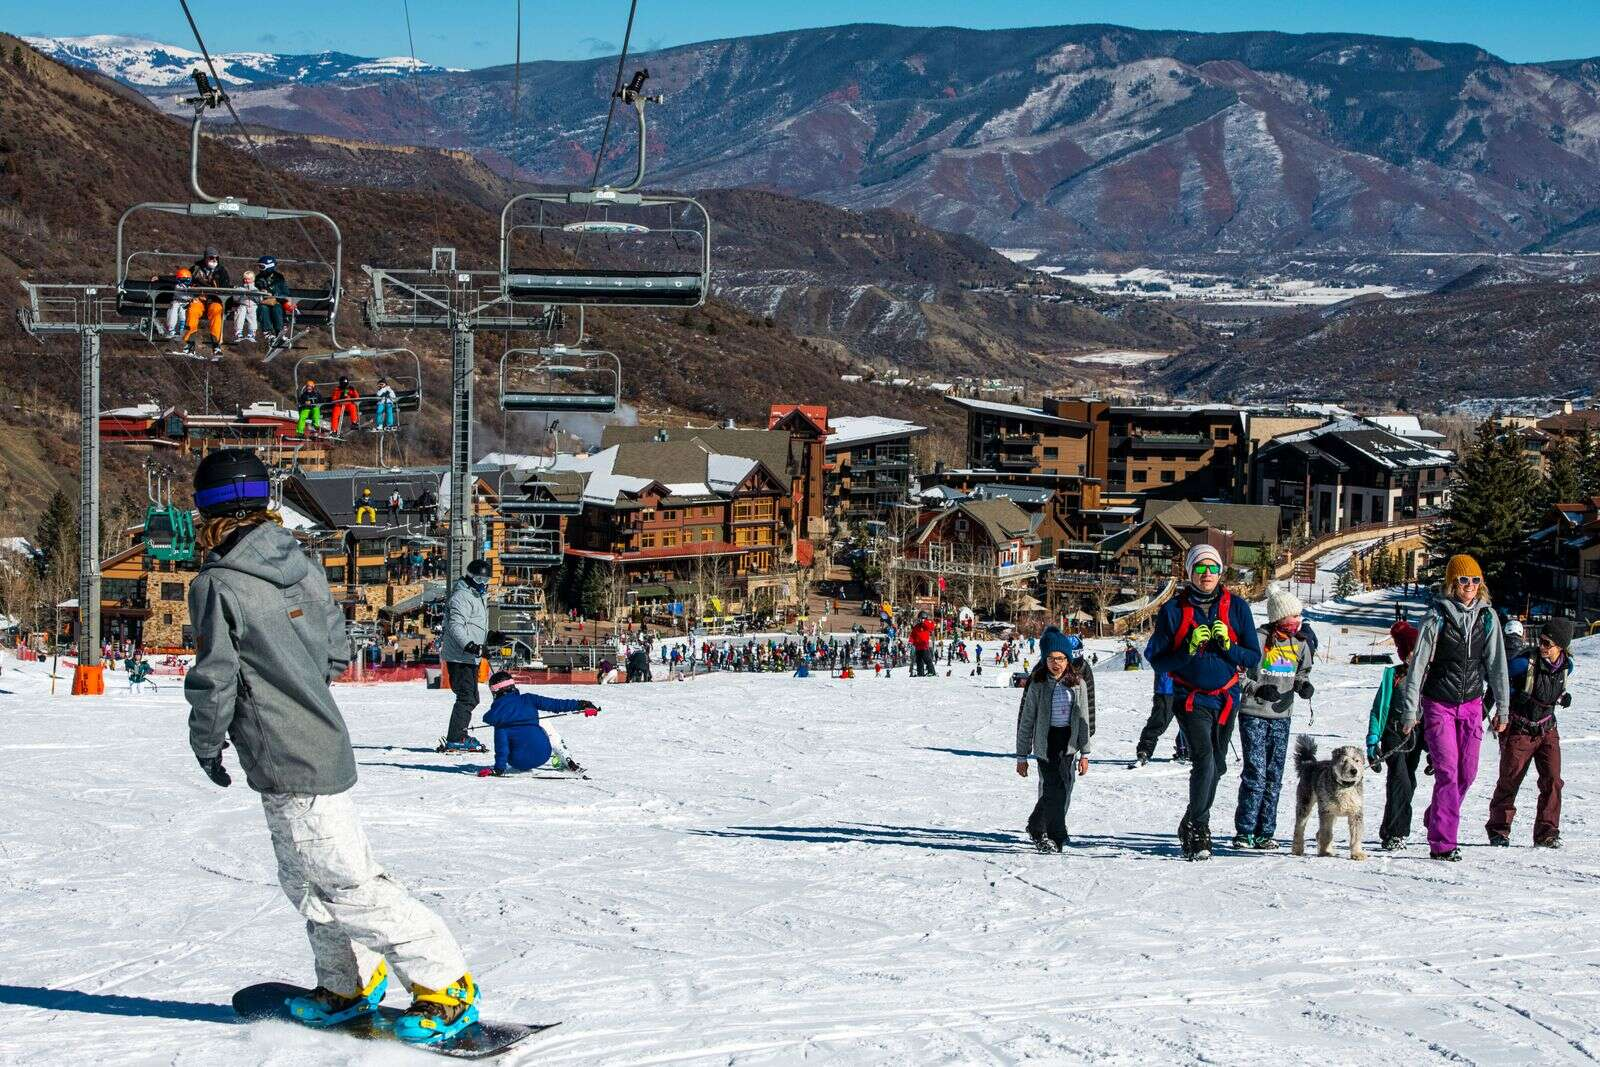 Crowds of people utilize the open ski runs on Snowmass on Friday, Nov. 27, 2020.